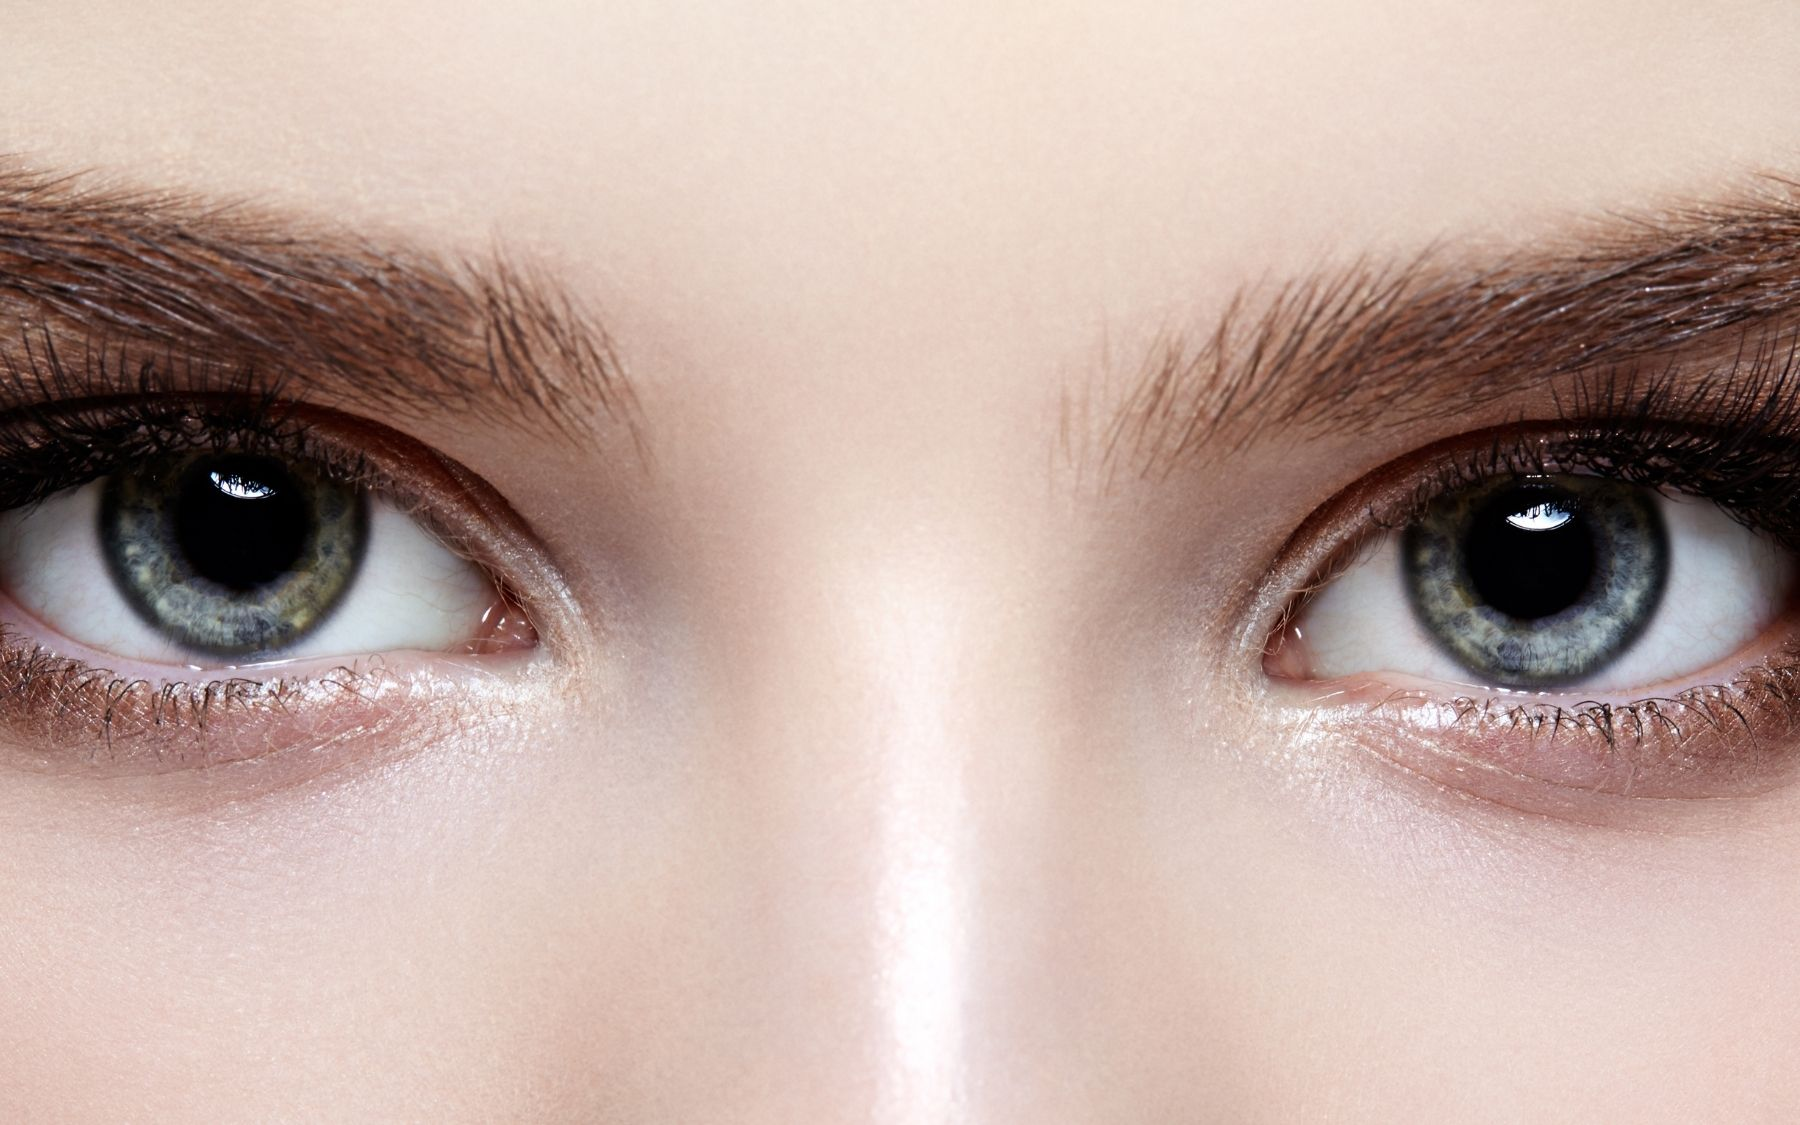 HSEH Implantable Contact Lenses